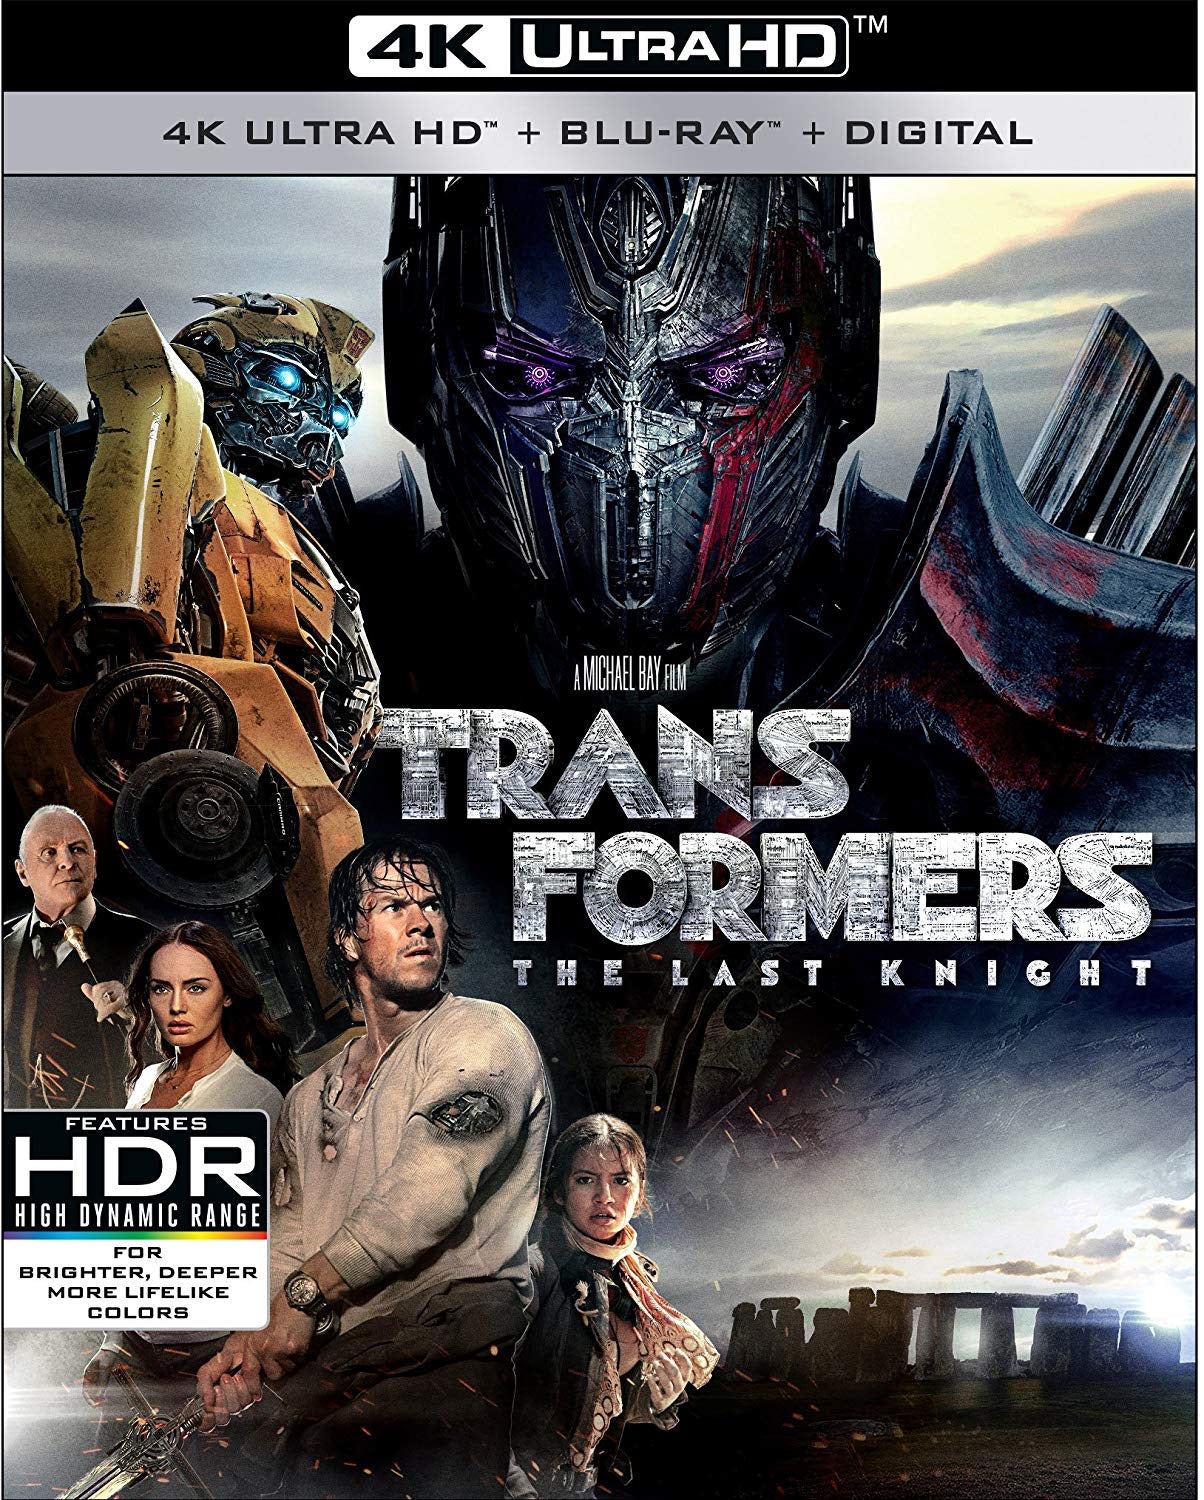 Transformers: The Last Knight (2017) Vudu 4K redemption only